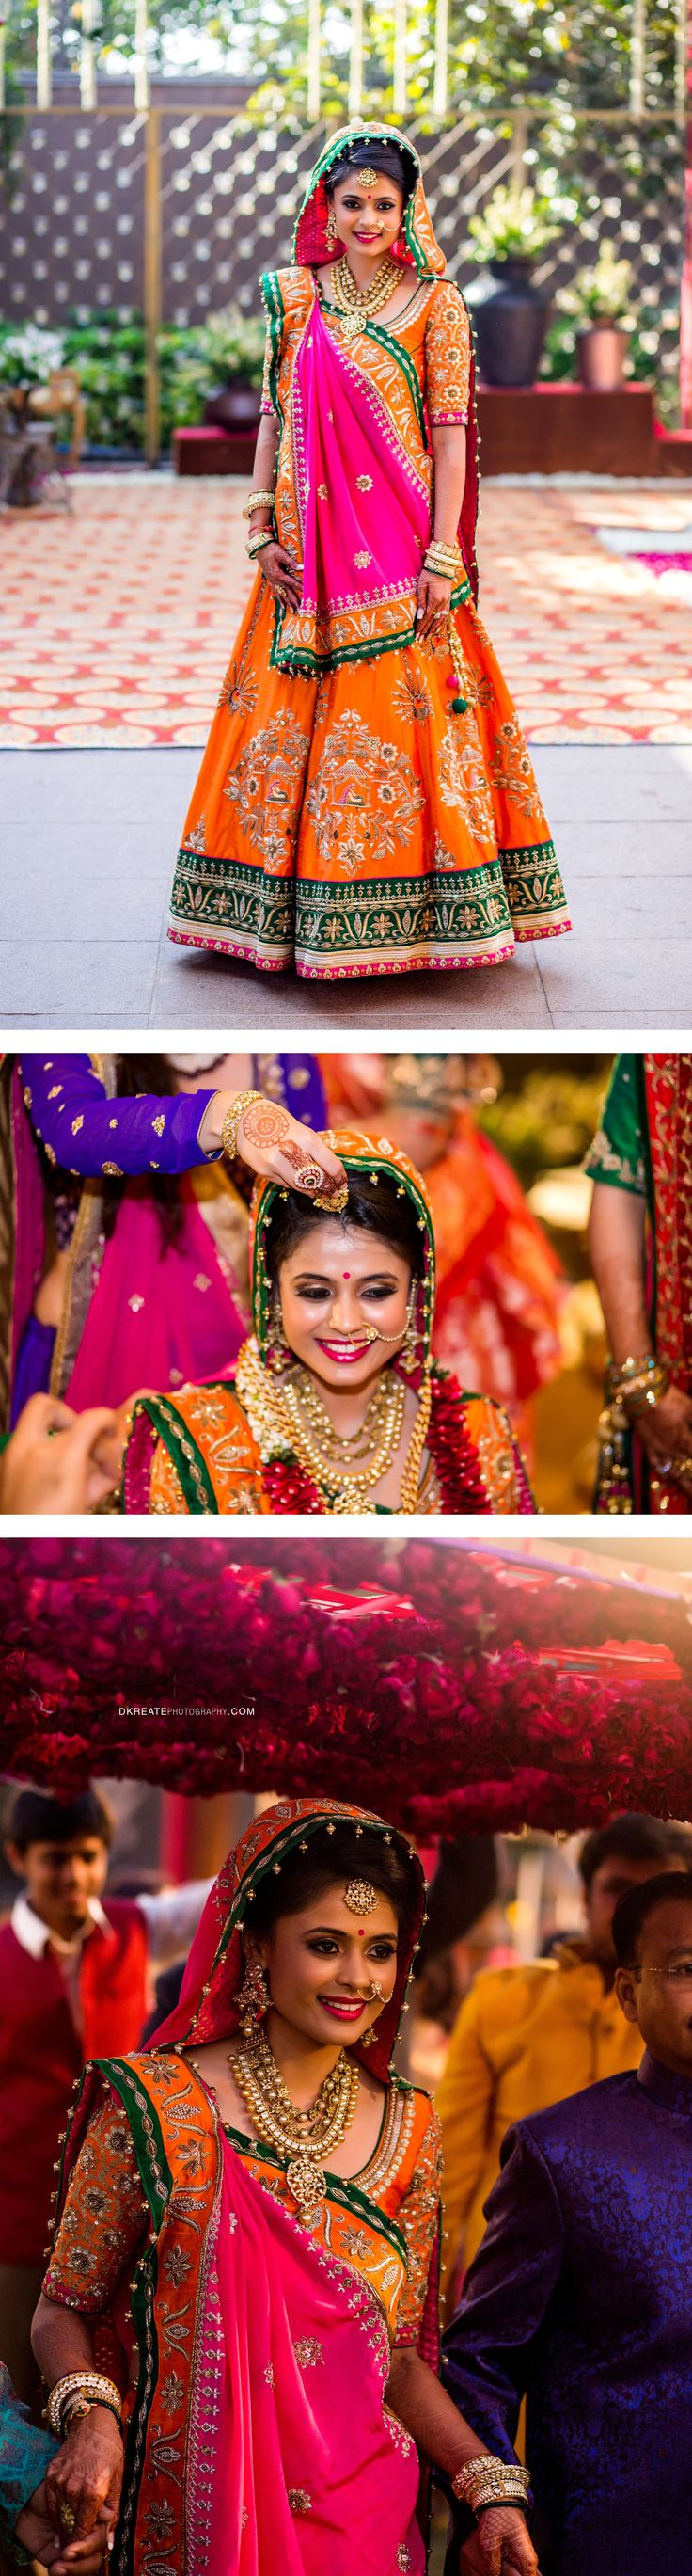 Indian Wedding Outfit Inspirations | DKreate Photography | Fresh bridal look…